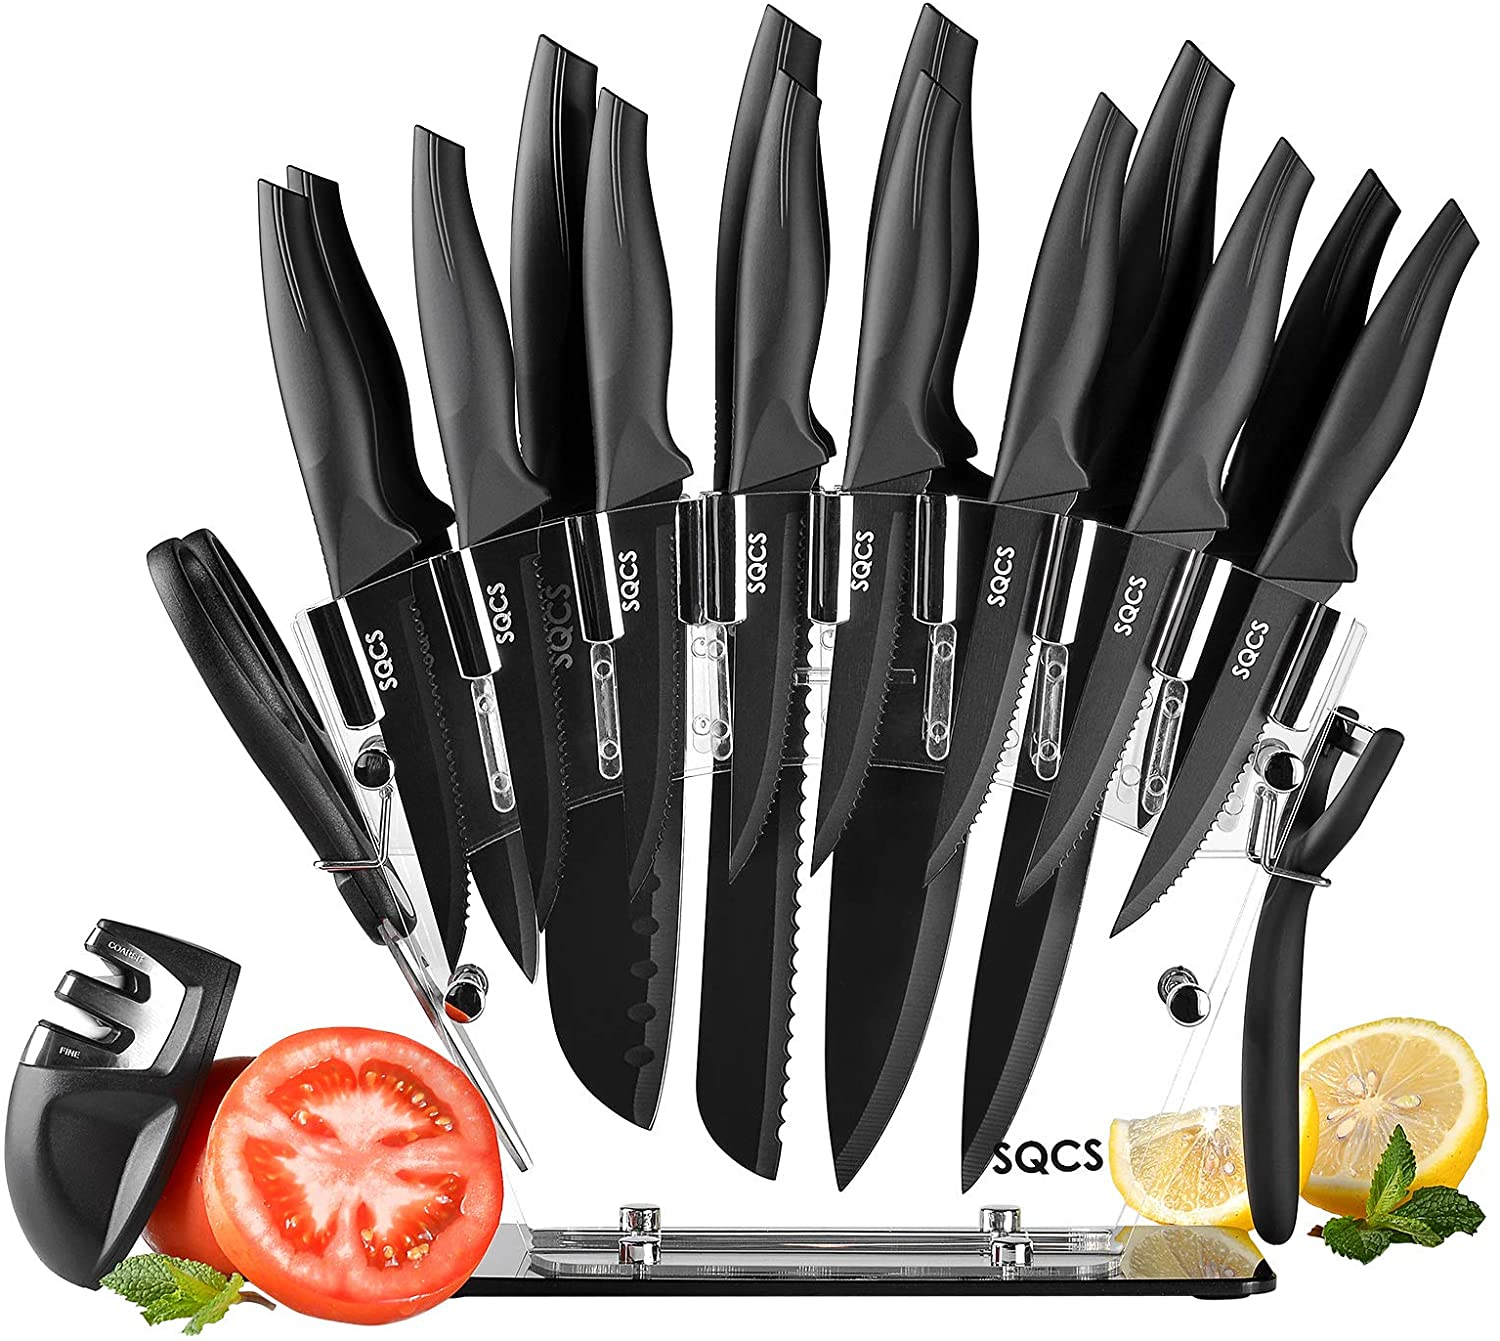 Knives Set, 18 Pieces Stainless Steel Kitchen Knife Block Set with Clear Block,Sharp Cutlery Knife Set with Sharpener,Acrylic Stand,Scissors,Peeler,8 Serrated Steak Knives,Coated Knife Blade, Black